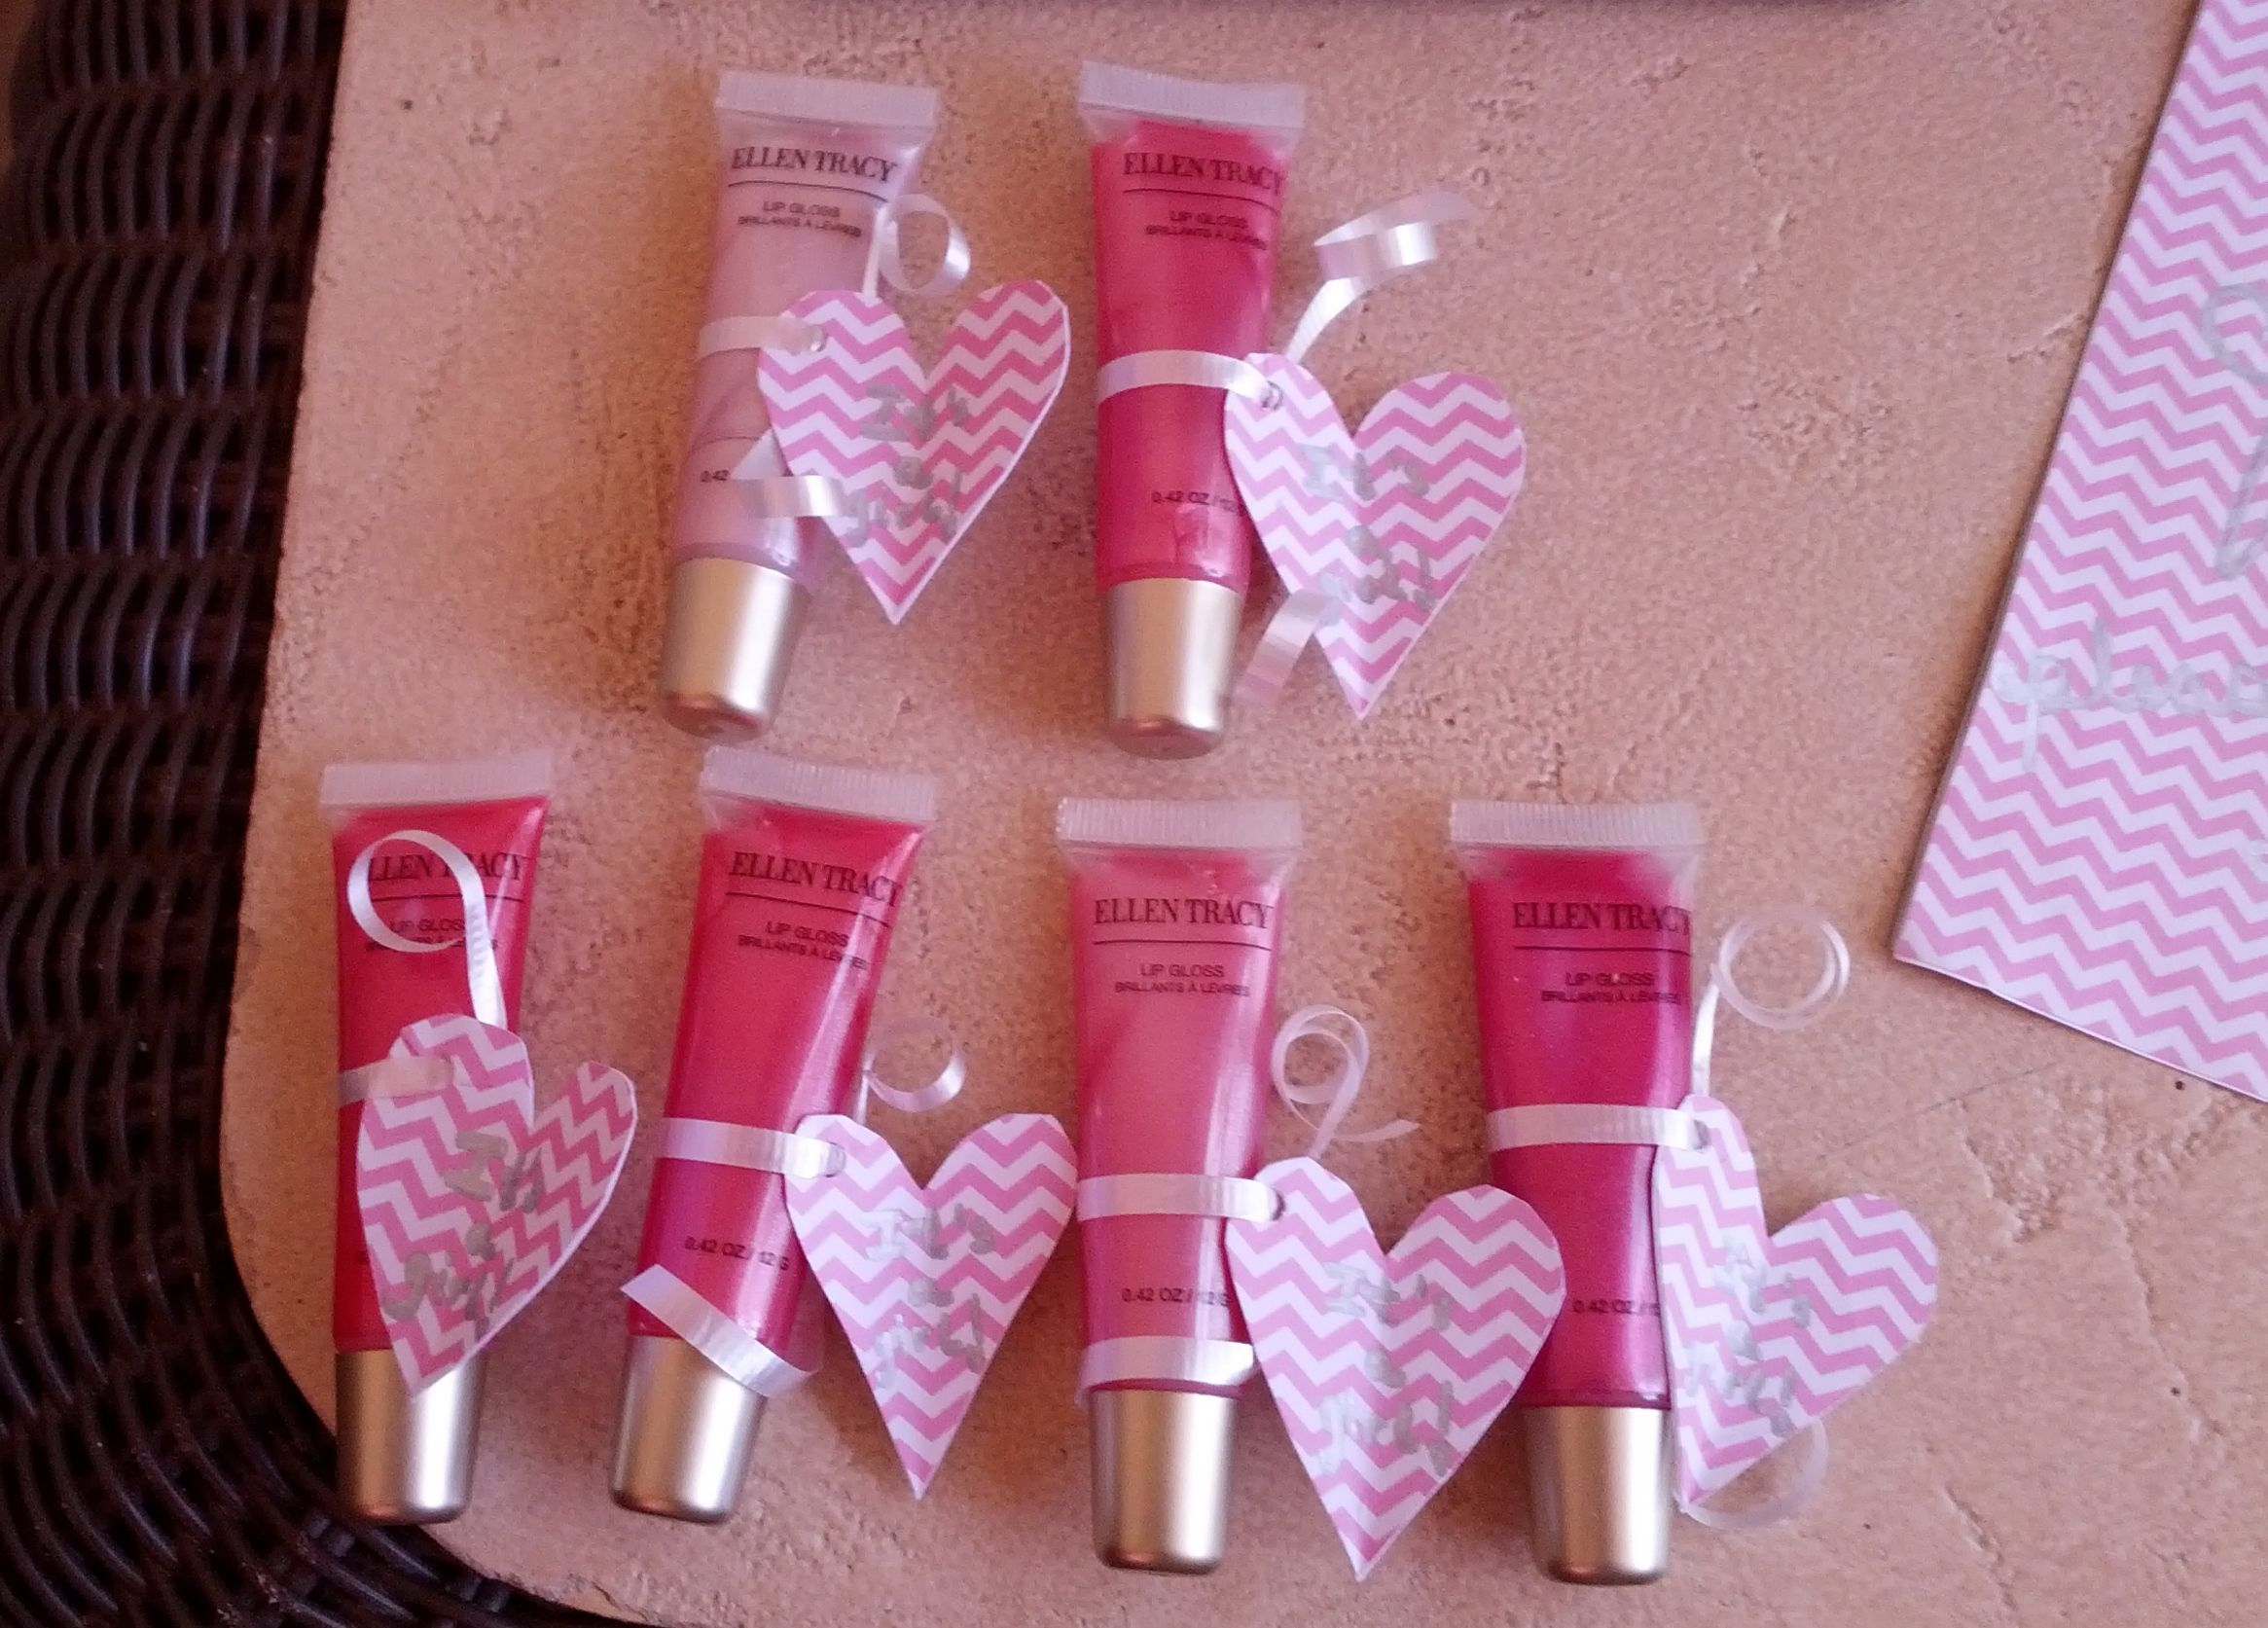 Beautiful Perfect Baby Girl Shower Favors Bought A Pack Of 6 Lip Glosses And Wrapped  Them